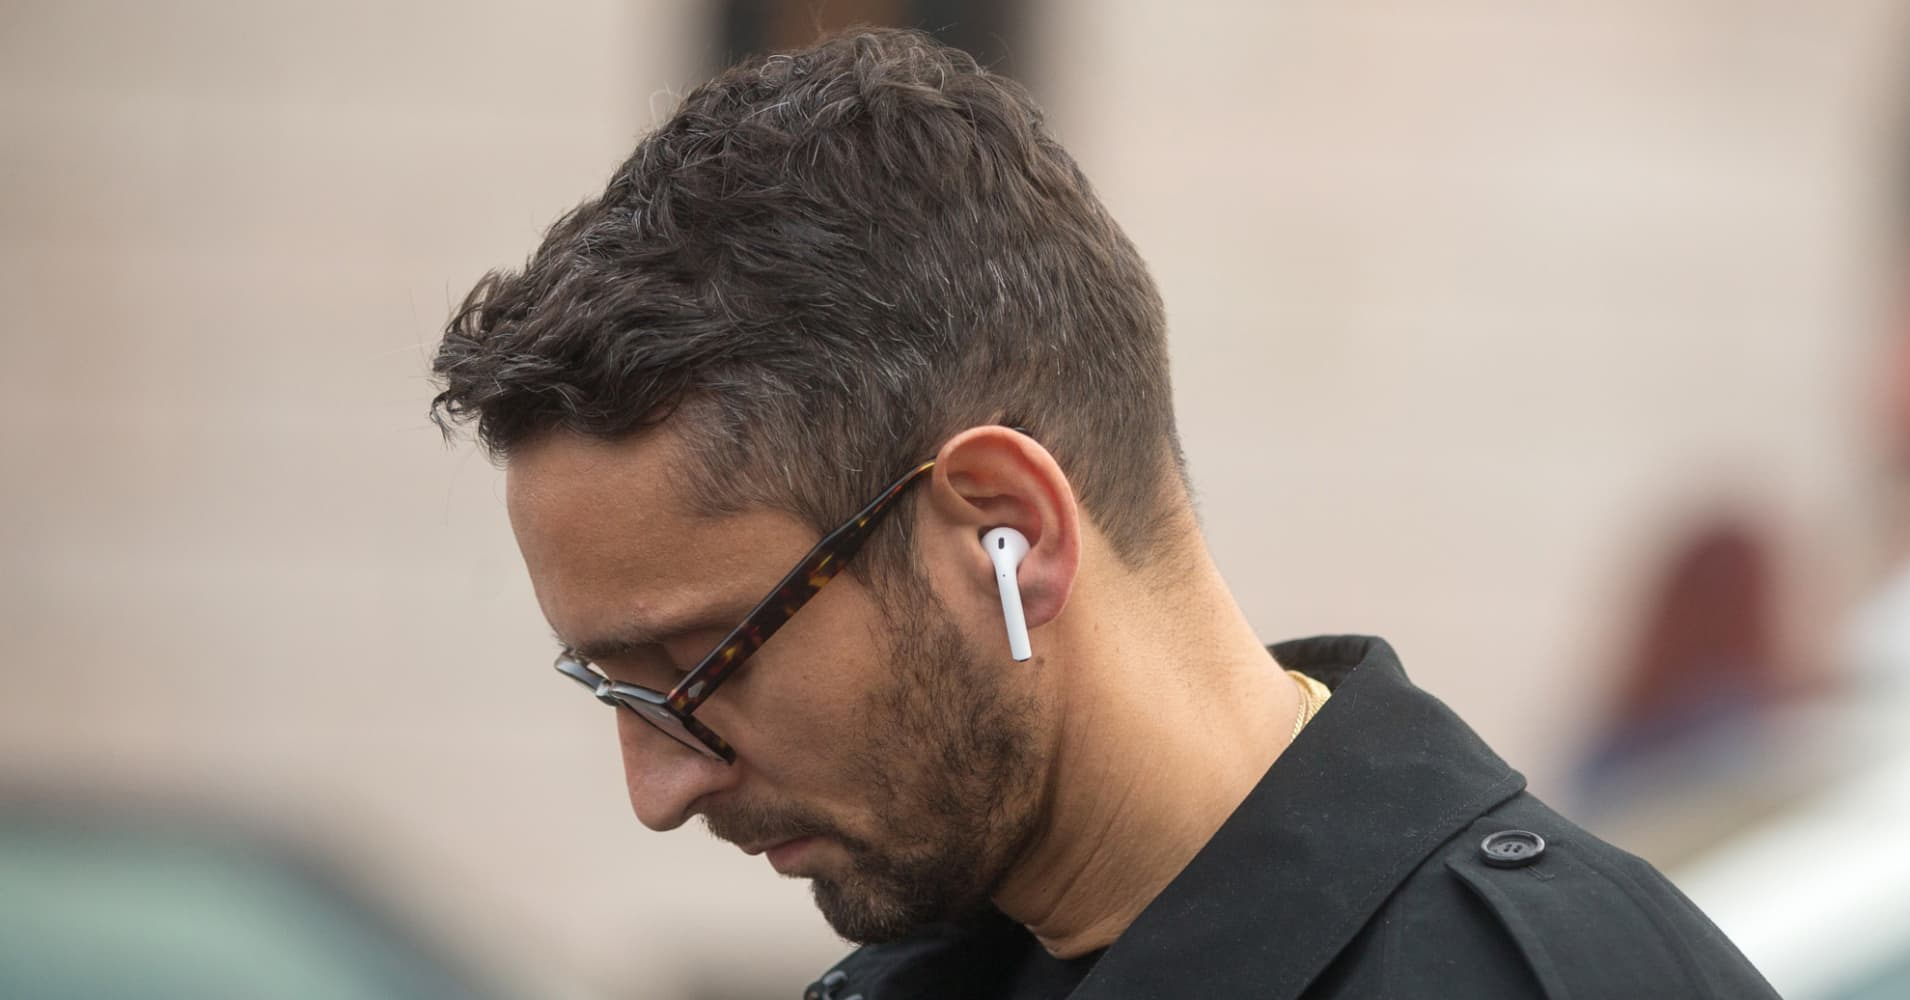 Apple could launch AirPods with brand new design as soon as this year, top analyst says - CNBC